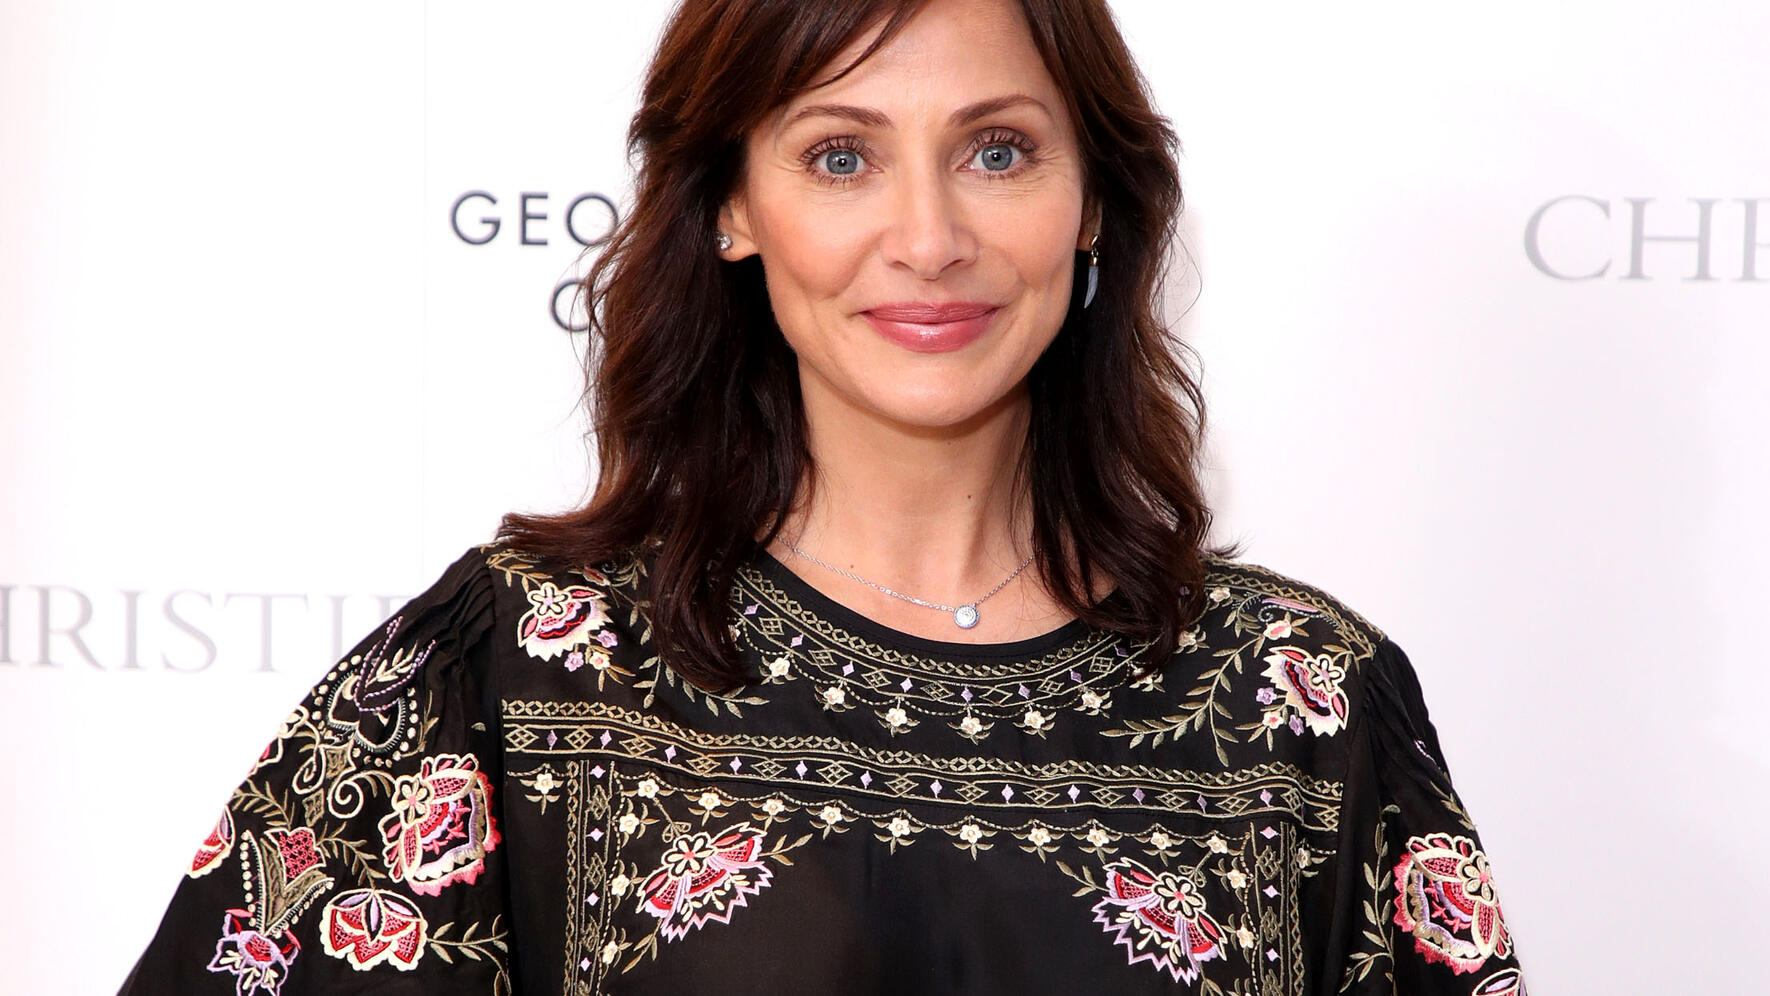 LONDON, ENGLAND - MARCH 12: Natalie Imbruglia attends The George Michael Collection VIP Reception at Christies on March 12, 2019 in London, England. (Photo by Mike Marsland/WireImage)